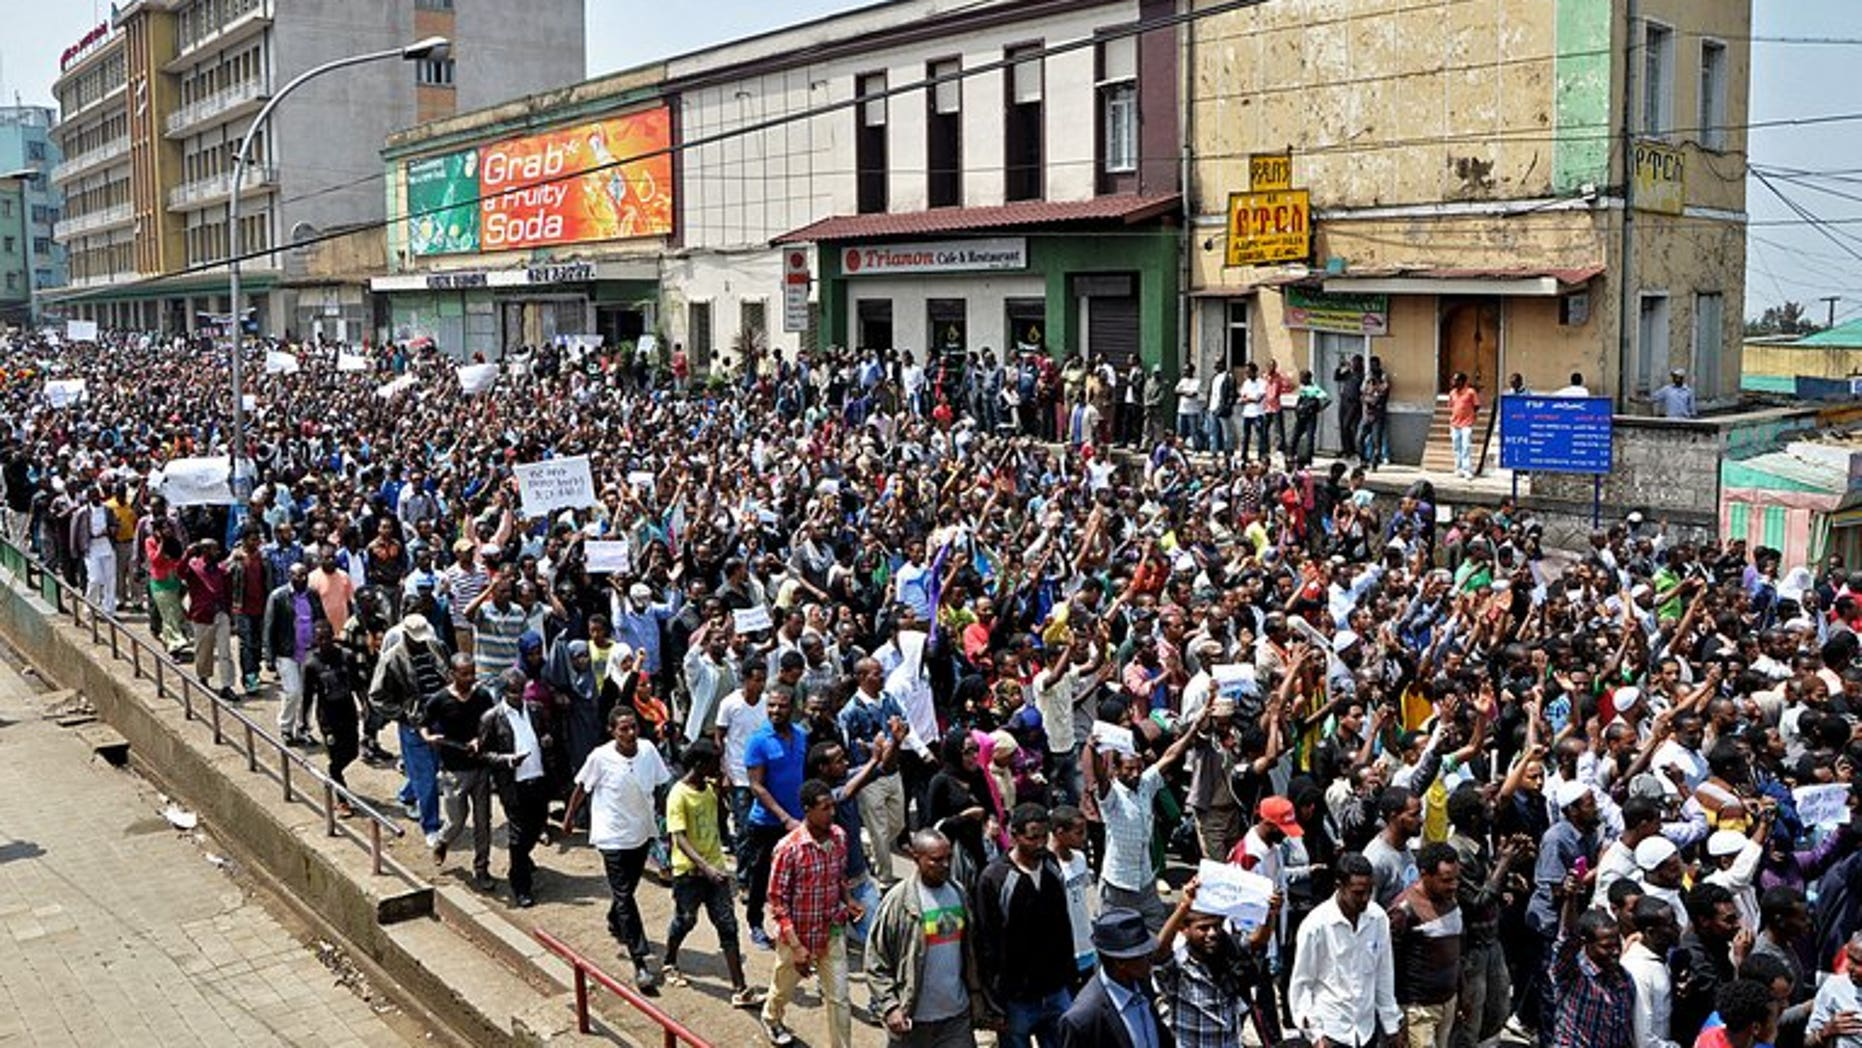 Thousands of Ethiopian opposition activists demonstrate in Addis Ababa on June 2, 2013. Activists said Saturday they will hold rare demonstrations in two northern towns calling for government reform in the tightly controlled country.